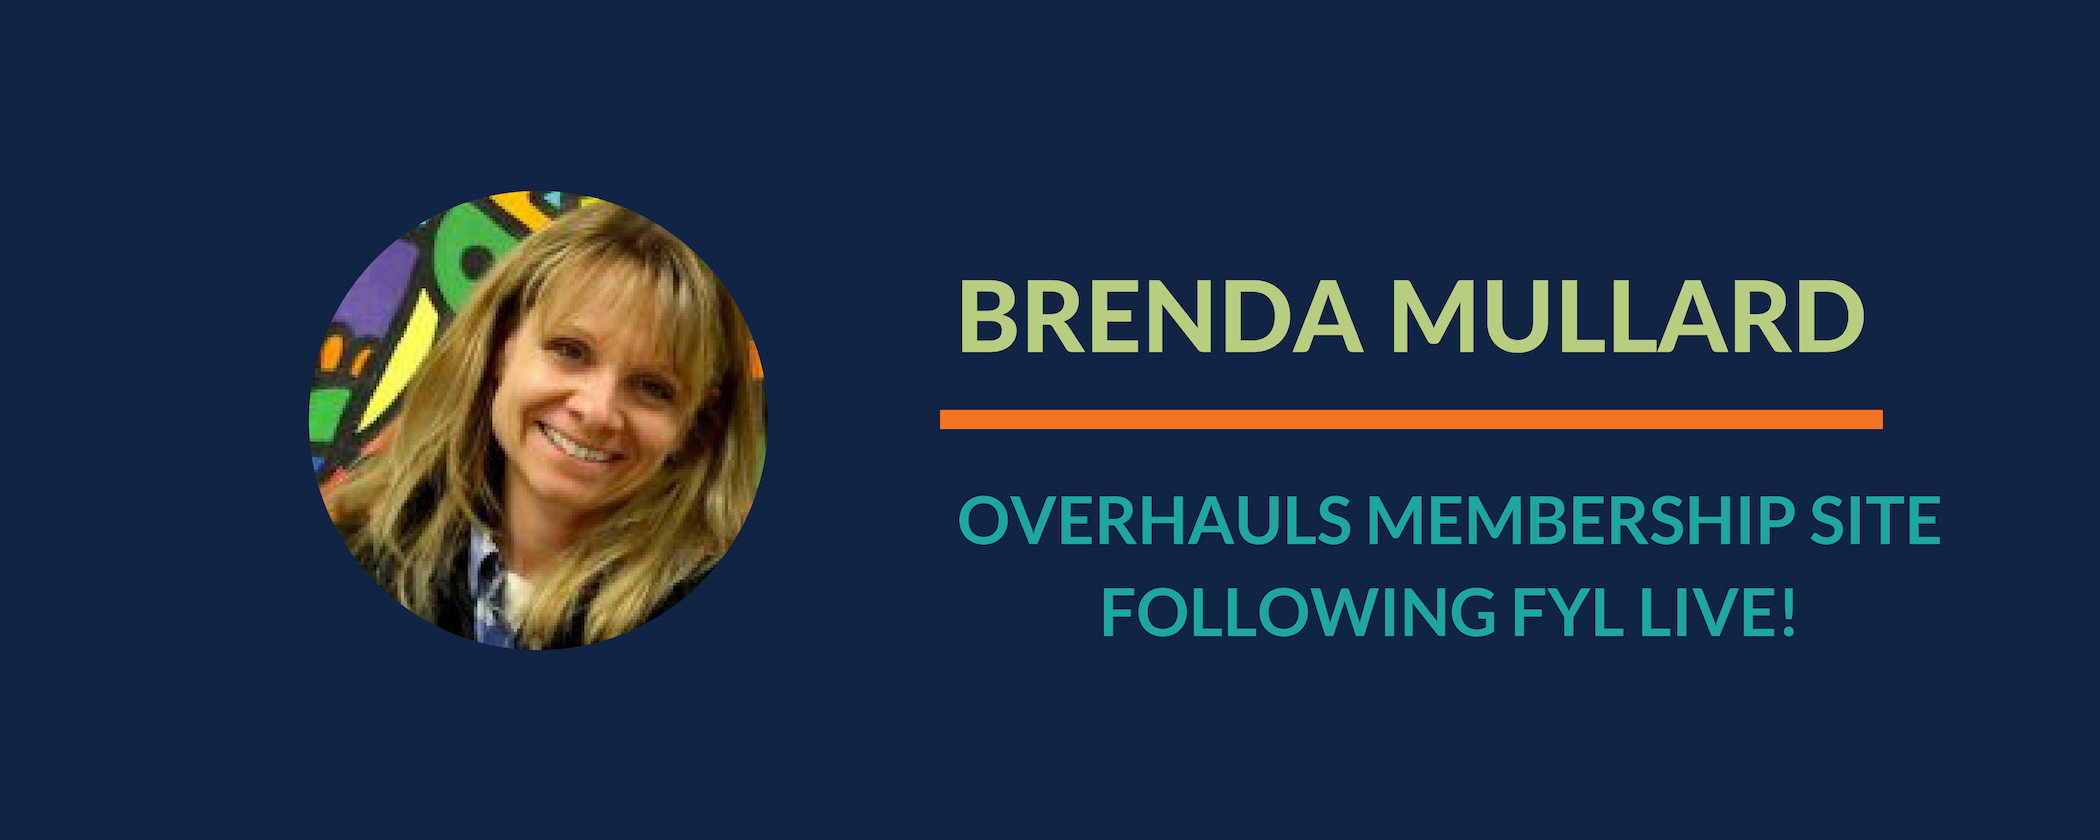 Success Story: Brenda overhauls her website and membership following FYL Live!